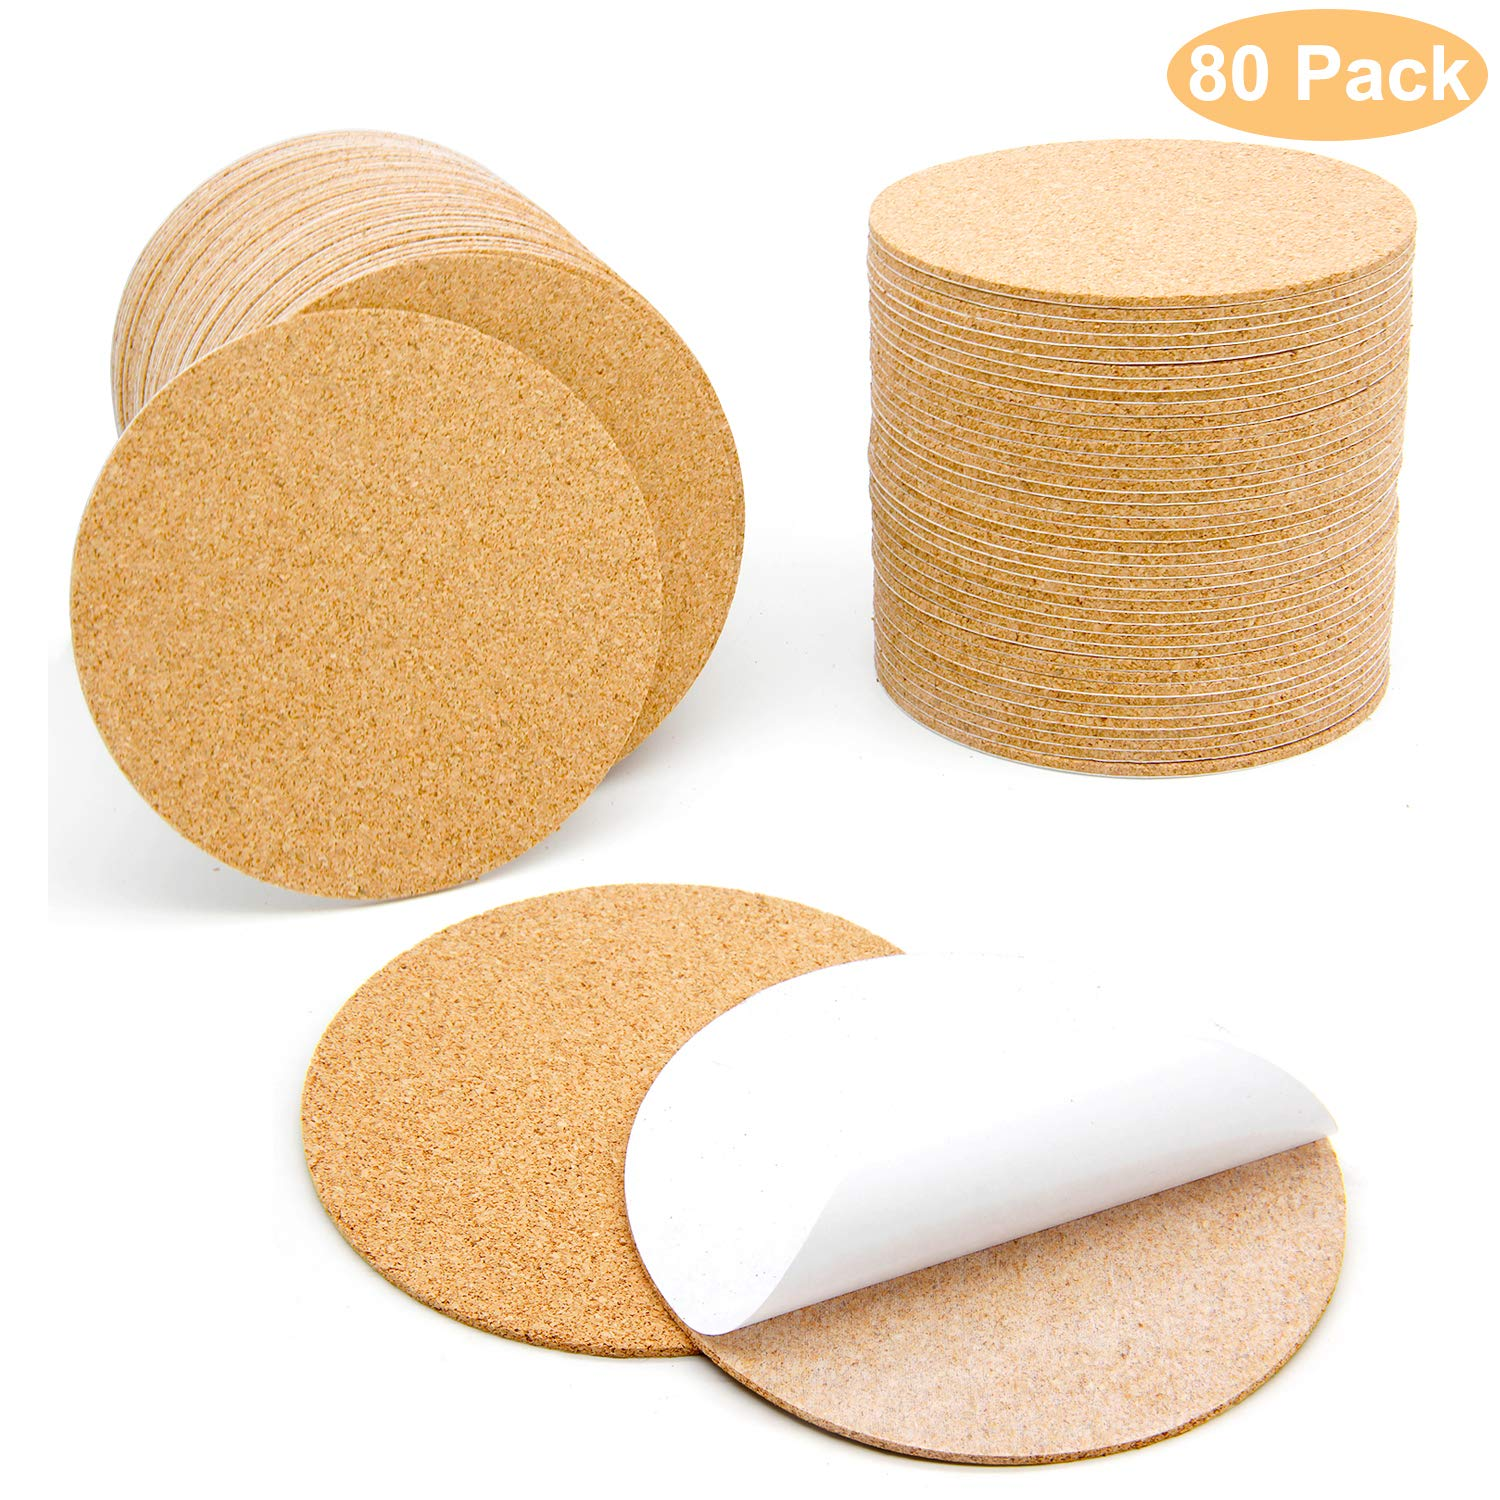 80 Pcs Self-Adhesive Cork Round for DIY Coasters, 4''x 4'' Cork Circle, Cork Tiles, Cork Mat, Cork Sheets with Strong Adhesive-Backed by Blisstime by Blisstime